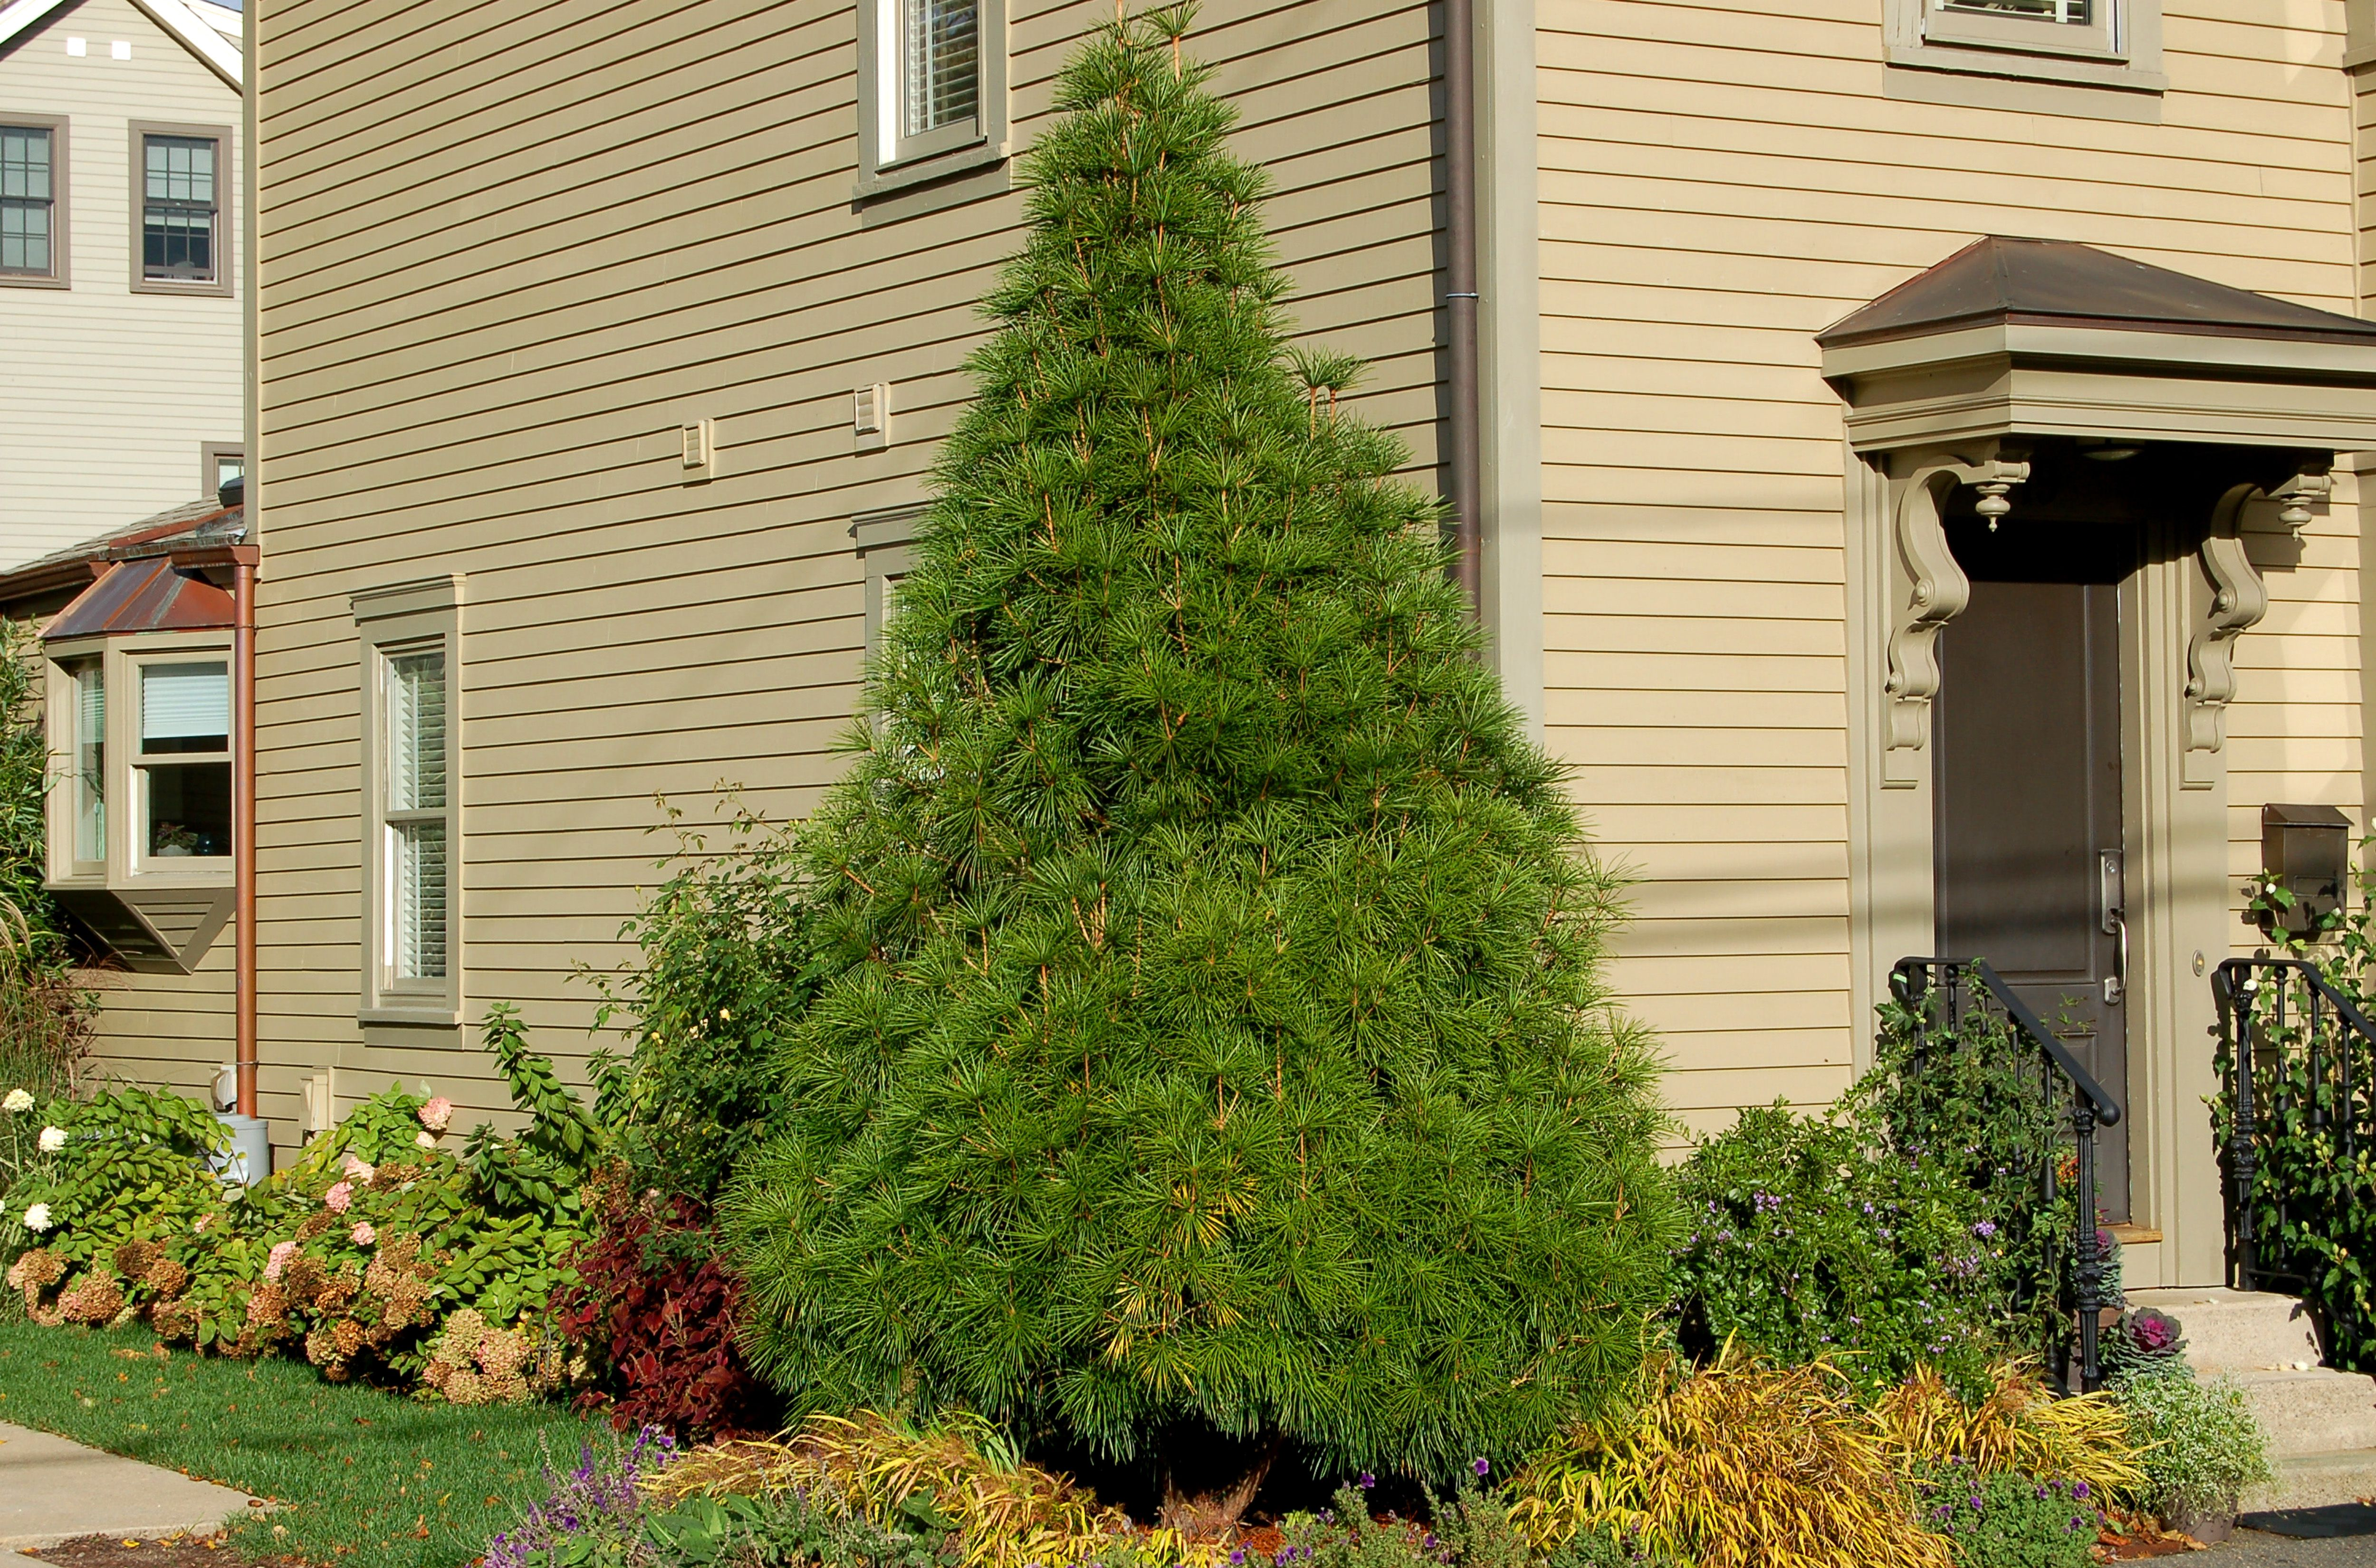 Image: These folks planted a Japanese umbrella pine tree right in their home's foundation bed.